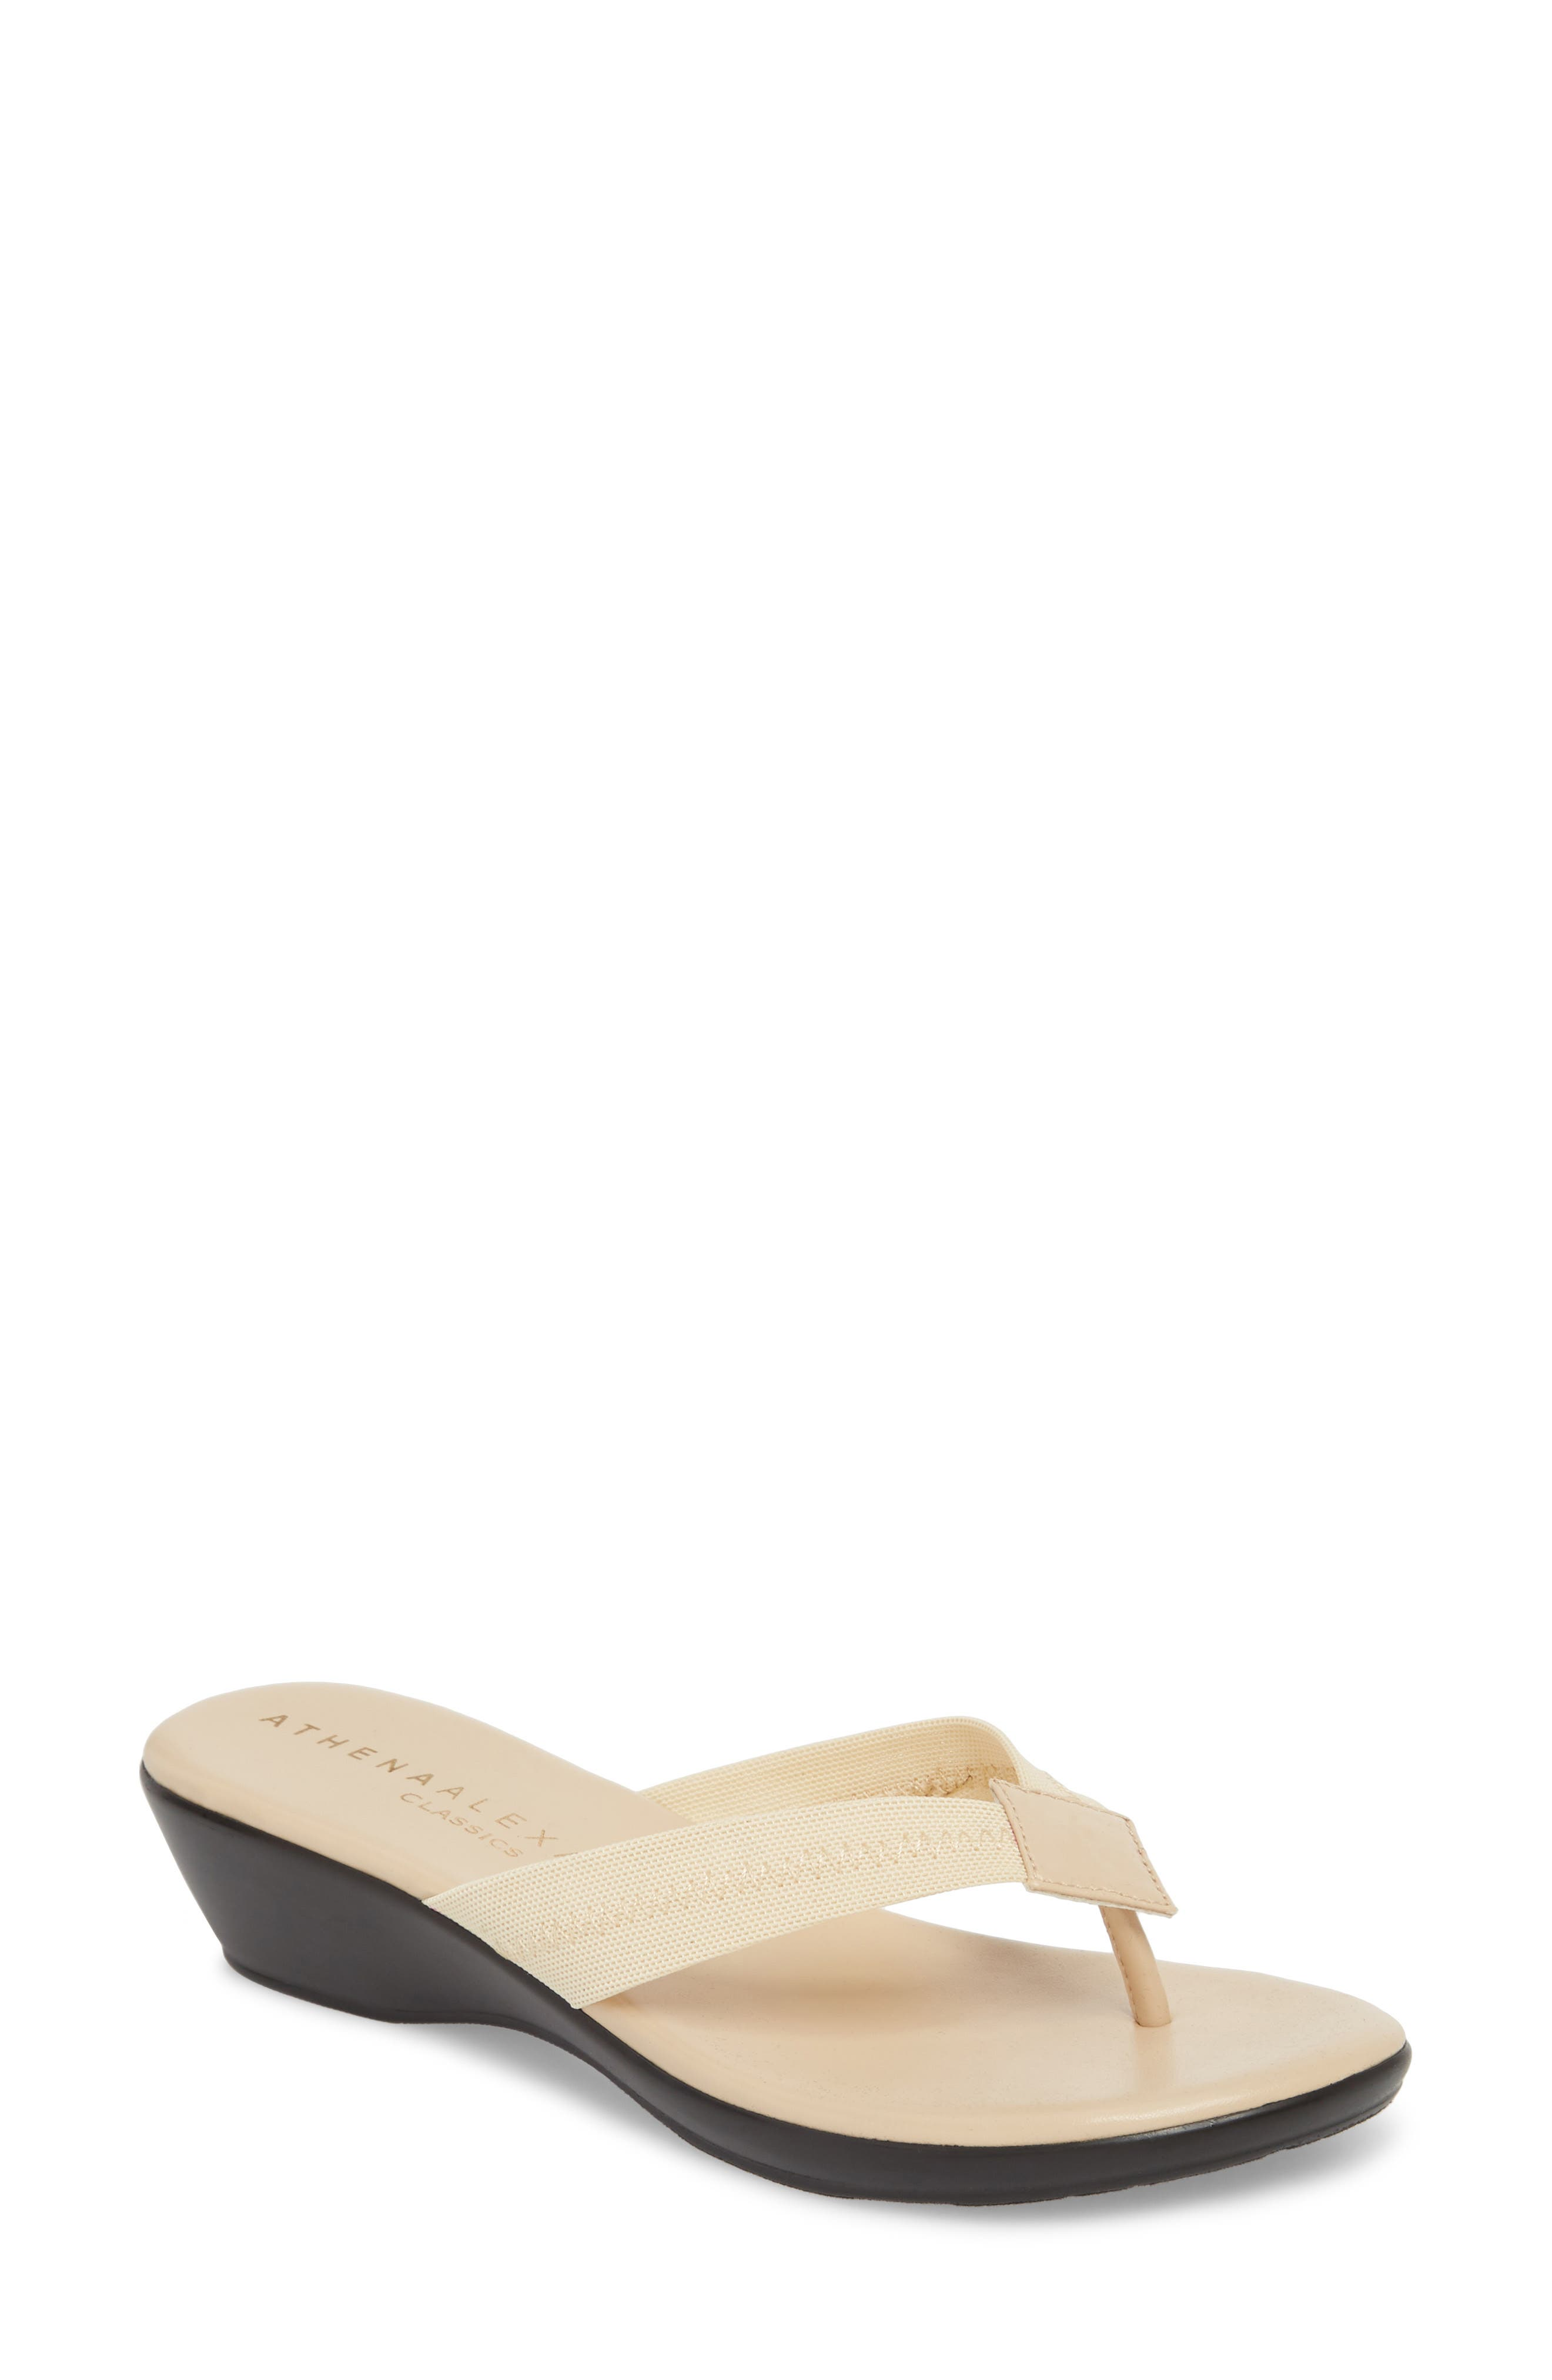 Ying Flip Flop,                             Main thumbnail 1, color,                             BEIGE STRETCH FABRIC